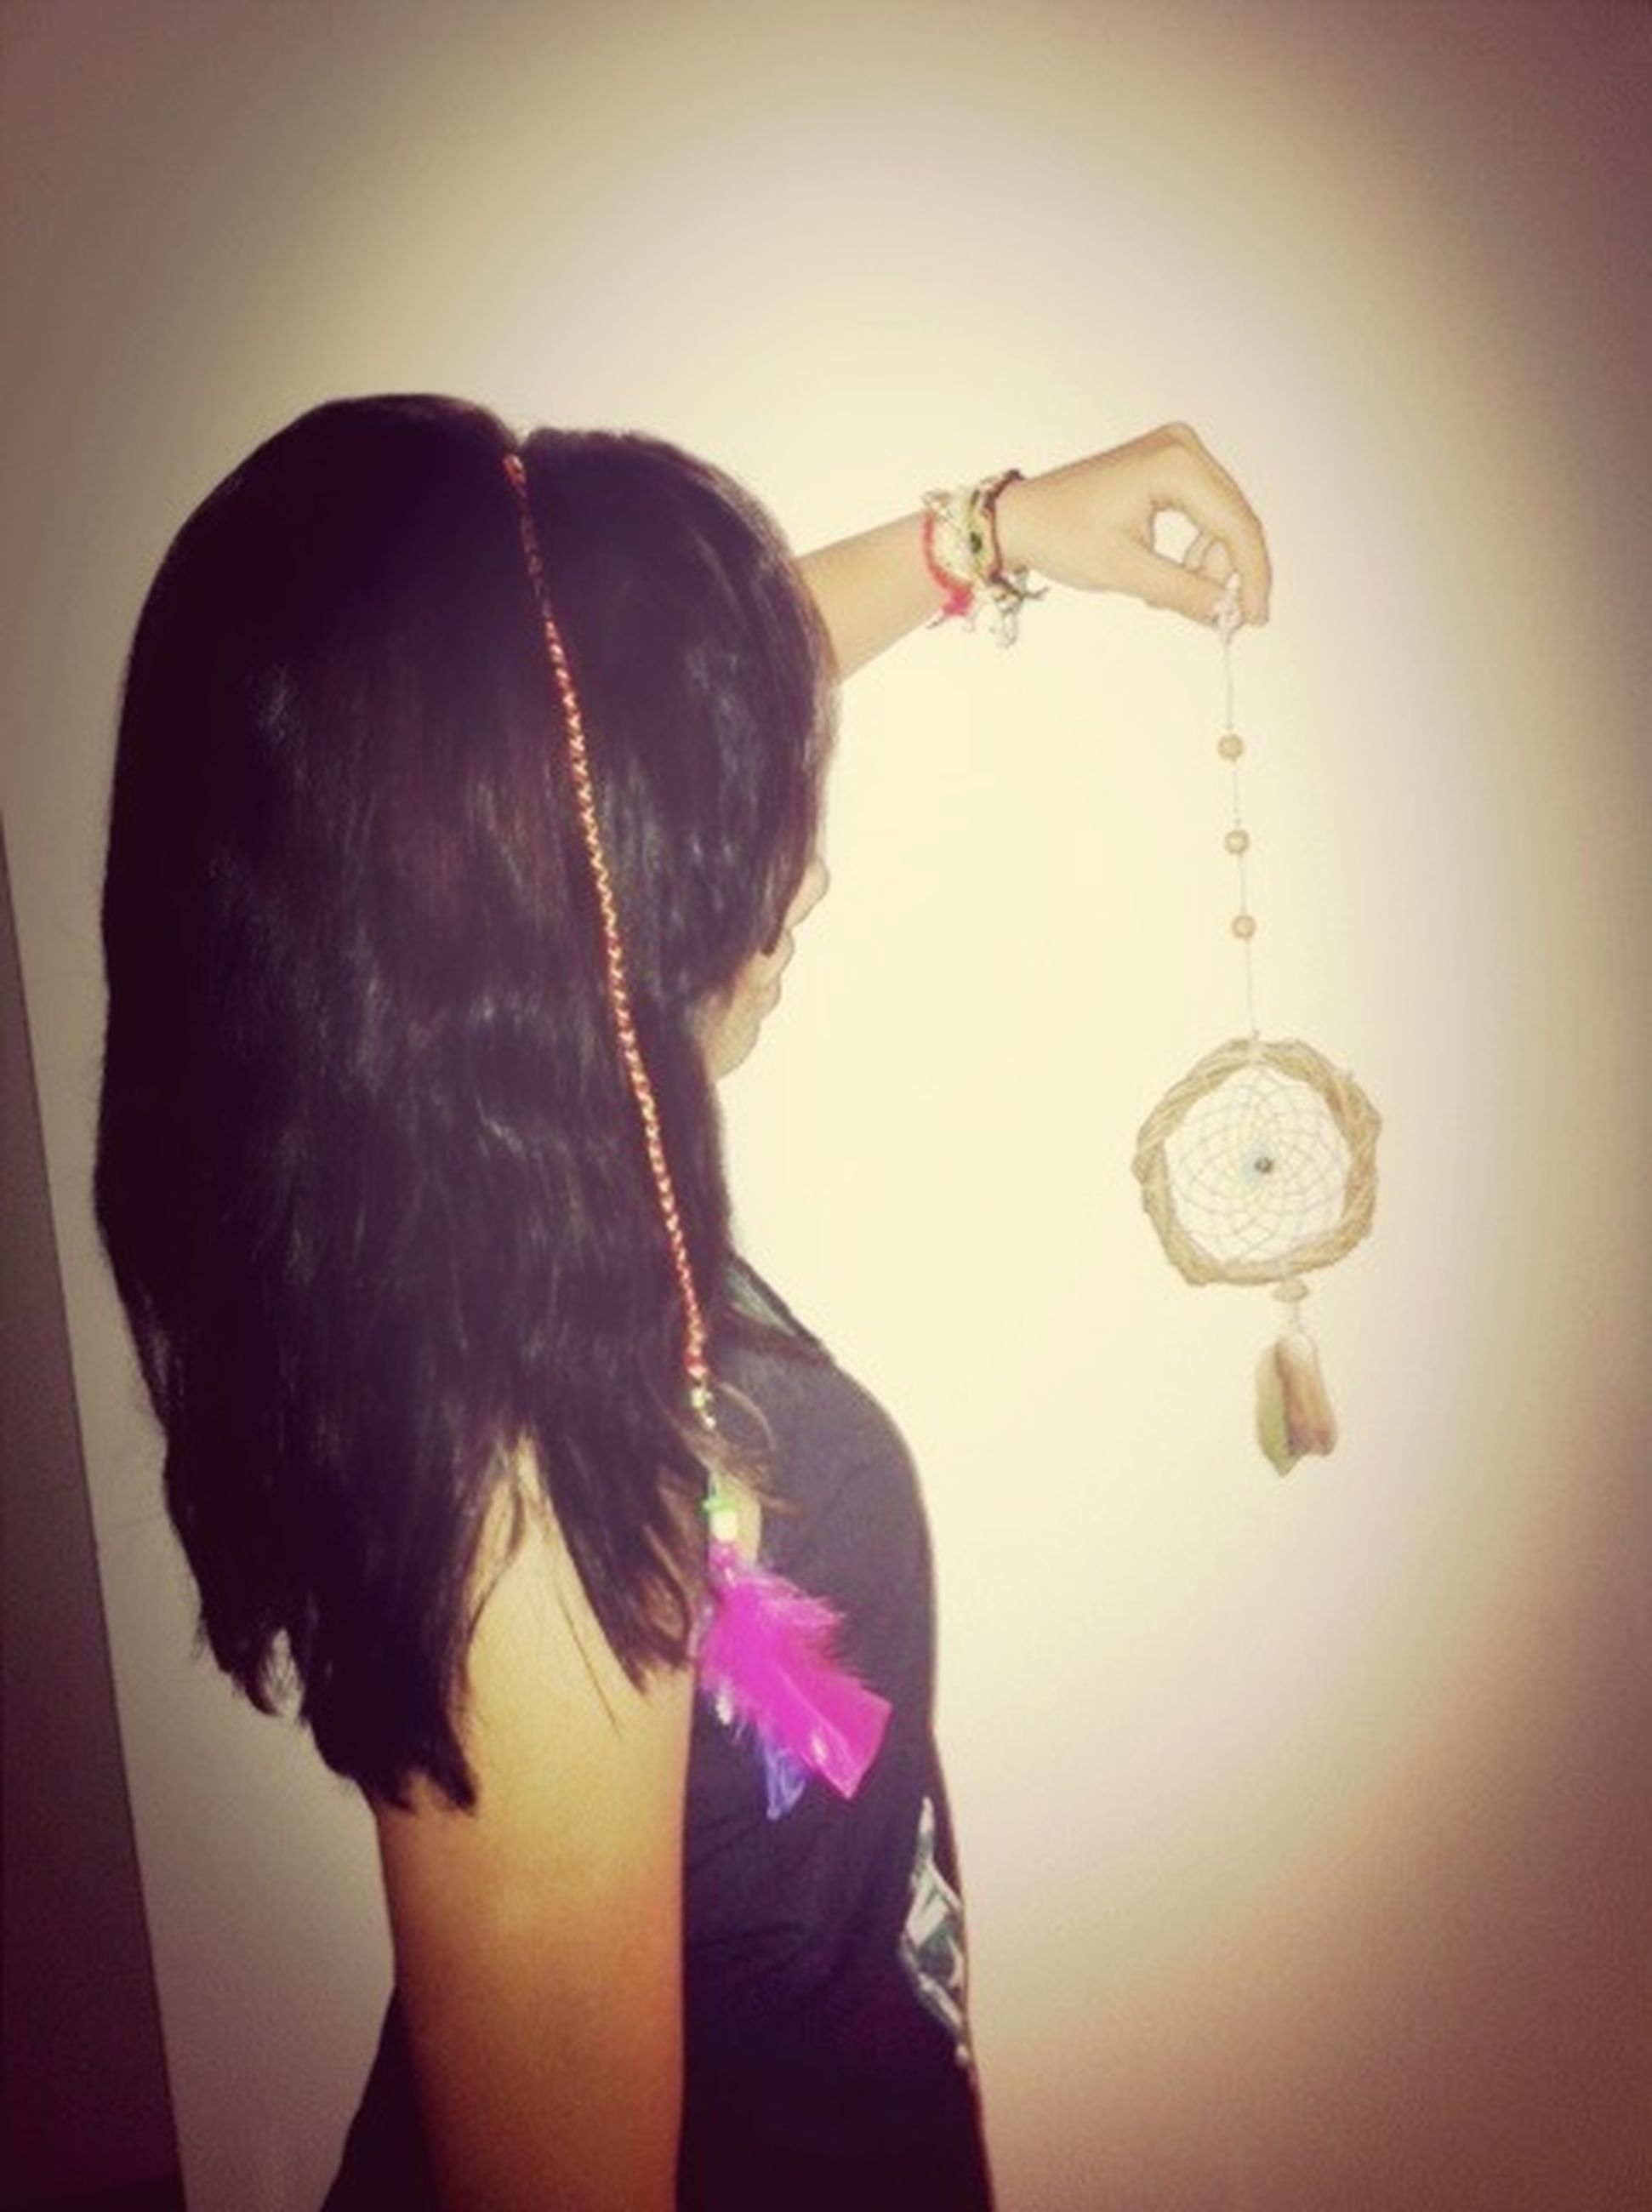 lifestyles, indoors, leisure activity, young adult, headshot, rear view, long hair, young women, person, casual clothing, standing, waist up, head and shoulders, holding, front view, side view, black hair